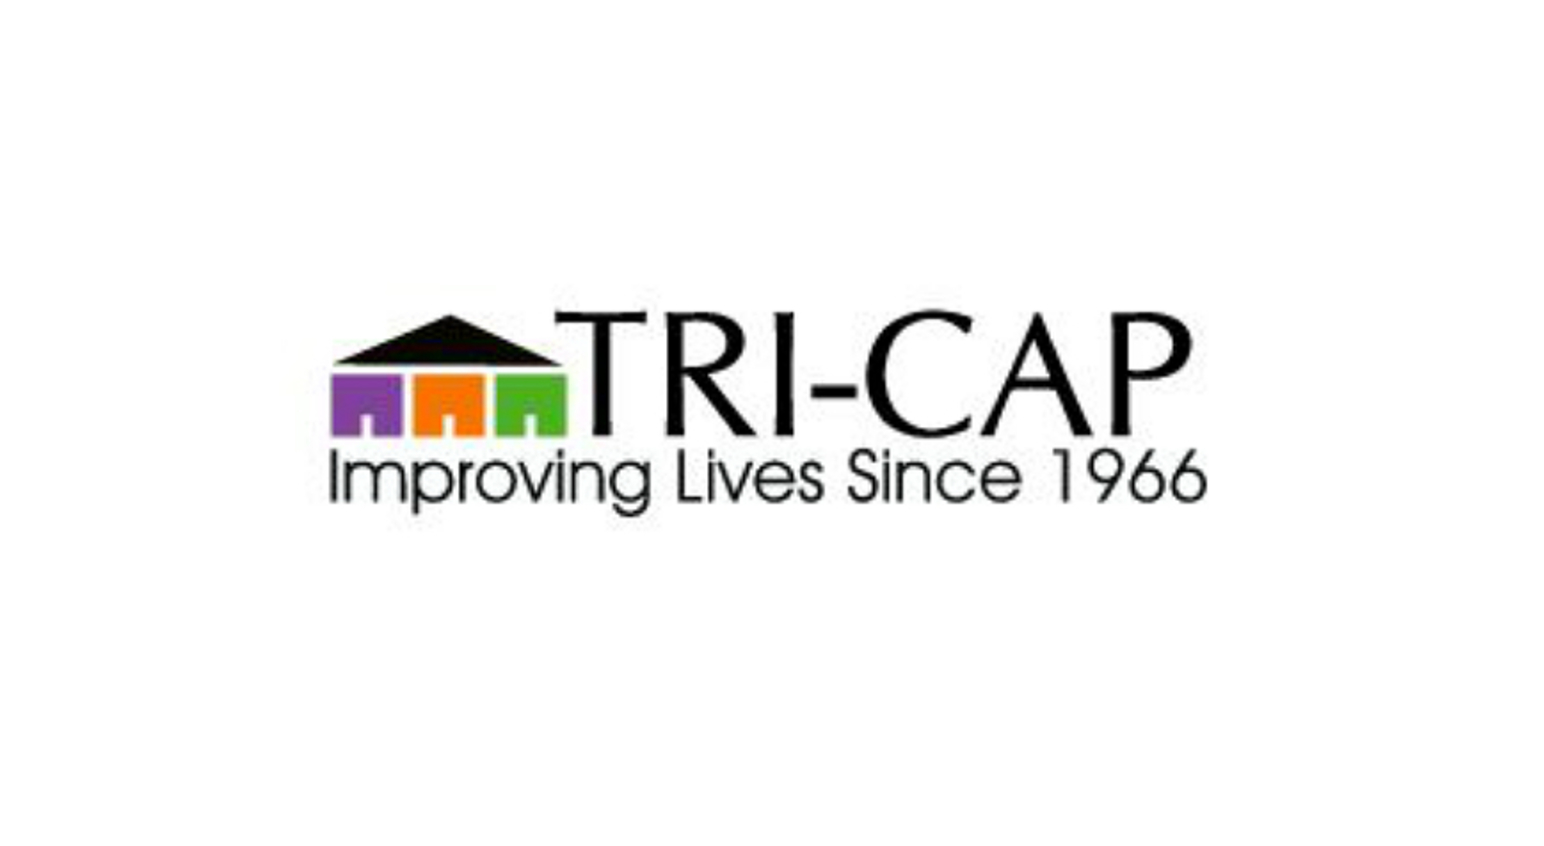 TRI-CAP Receives $52,000 Grant from Dubois County Community Foundation for Healthcare Services